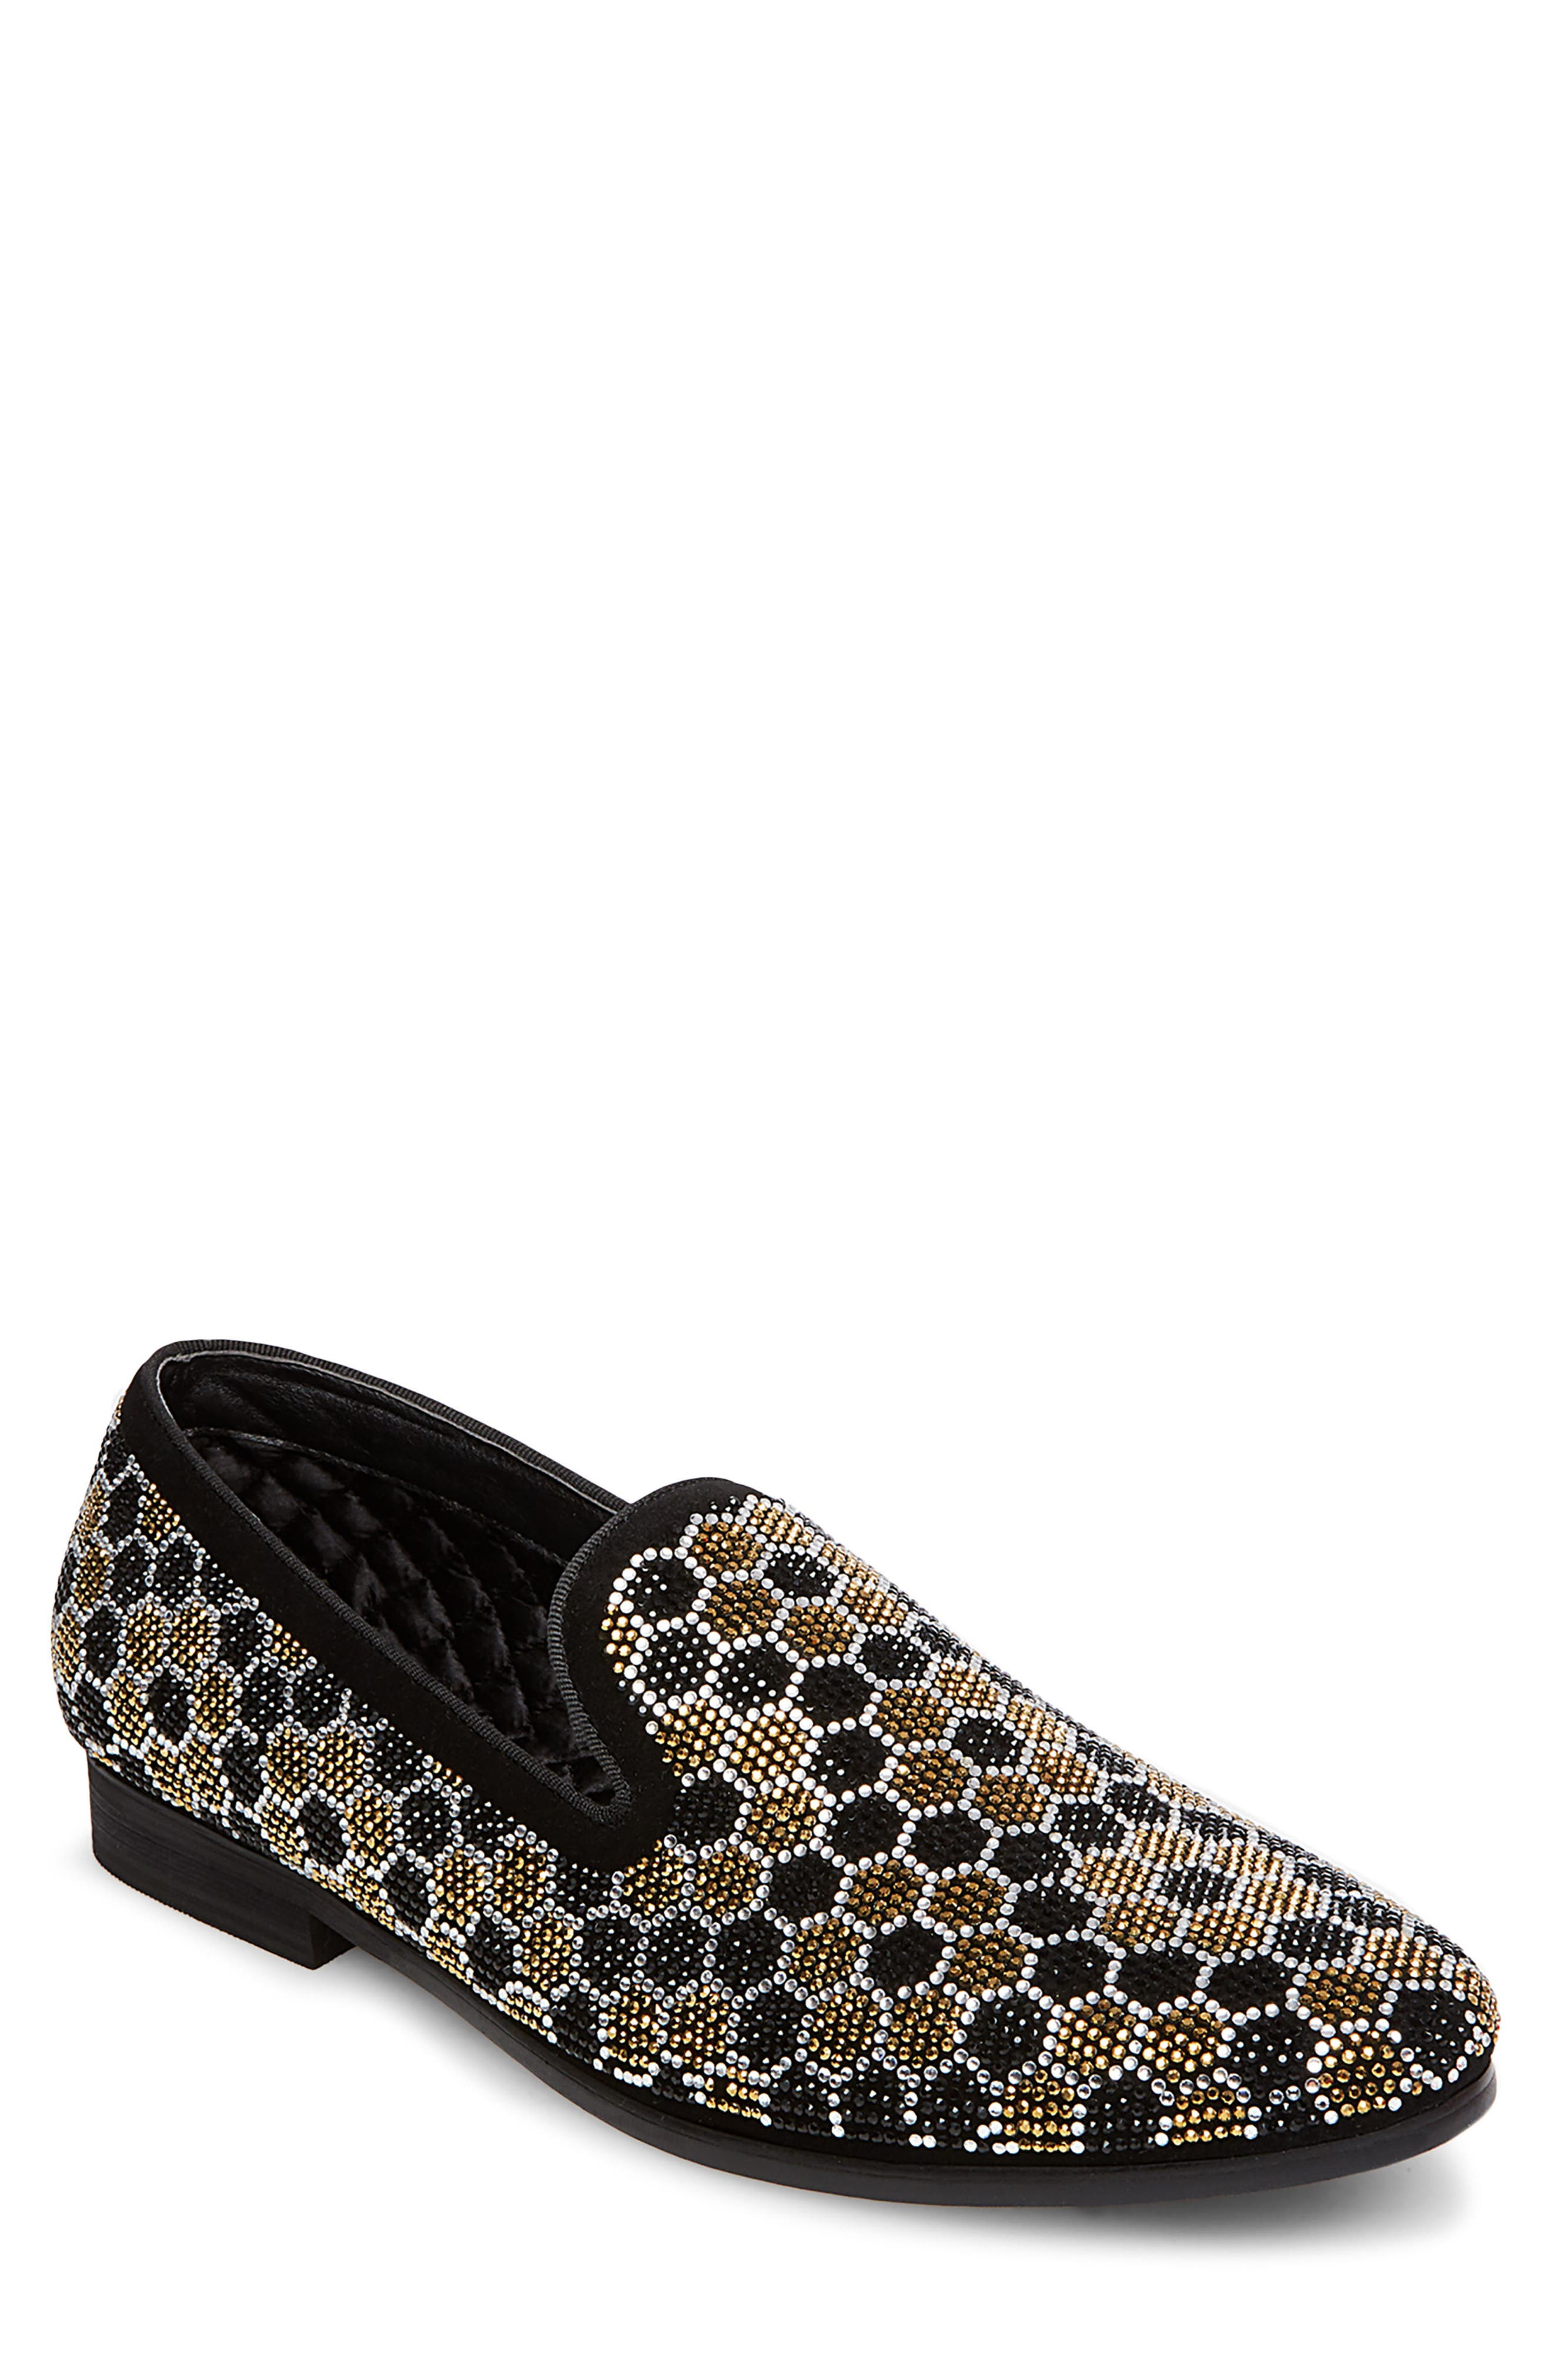 Caspian Studded Venetian Loafer,                             Main thumbnail 1, color,                             003